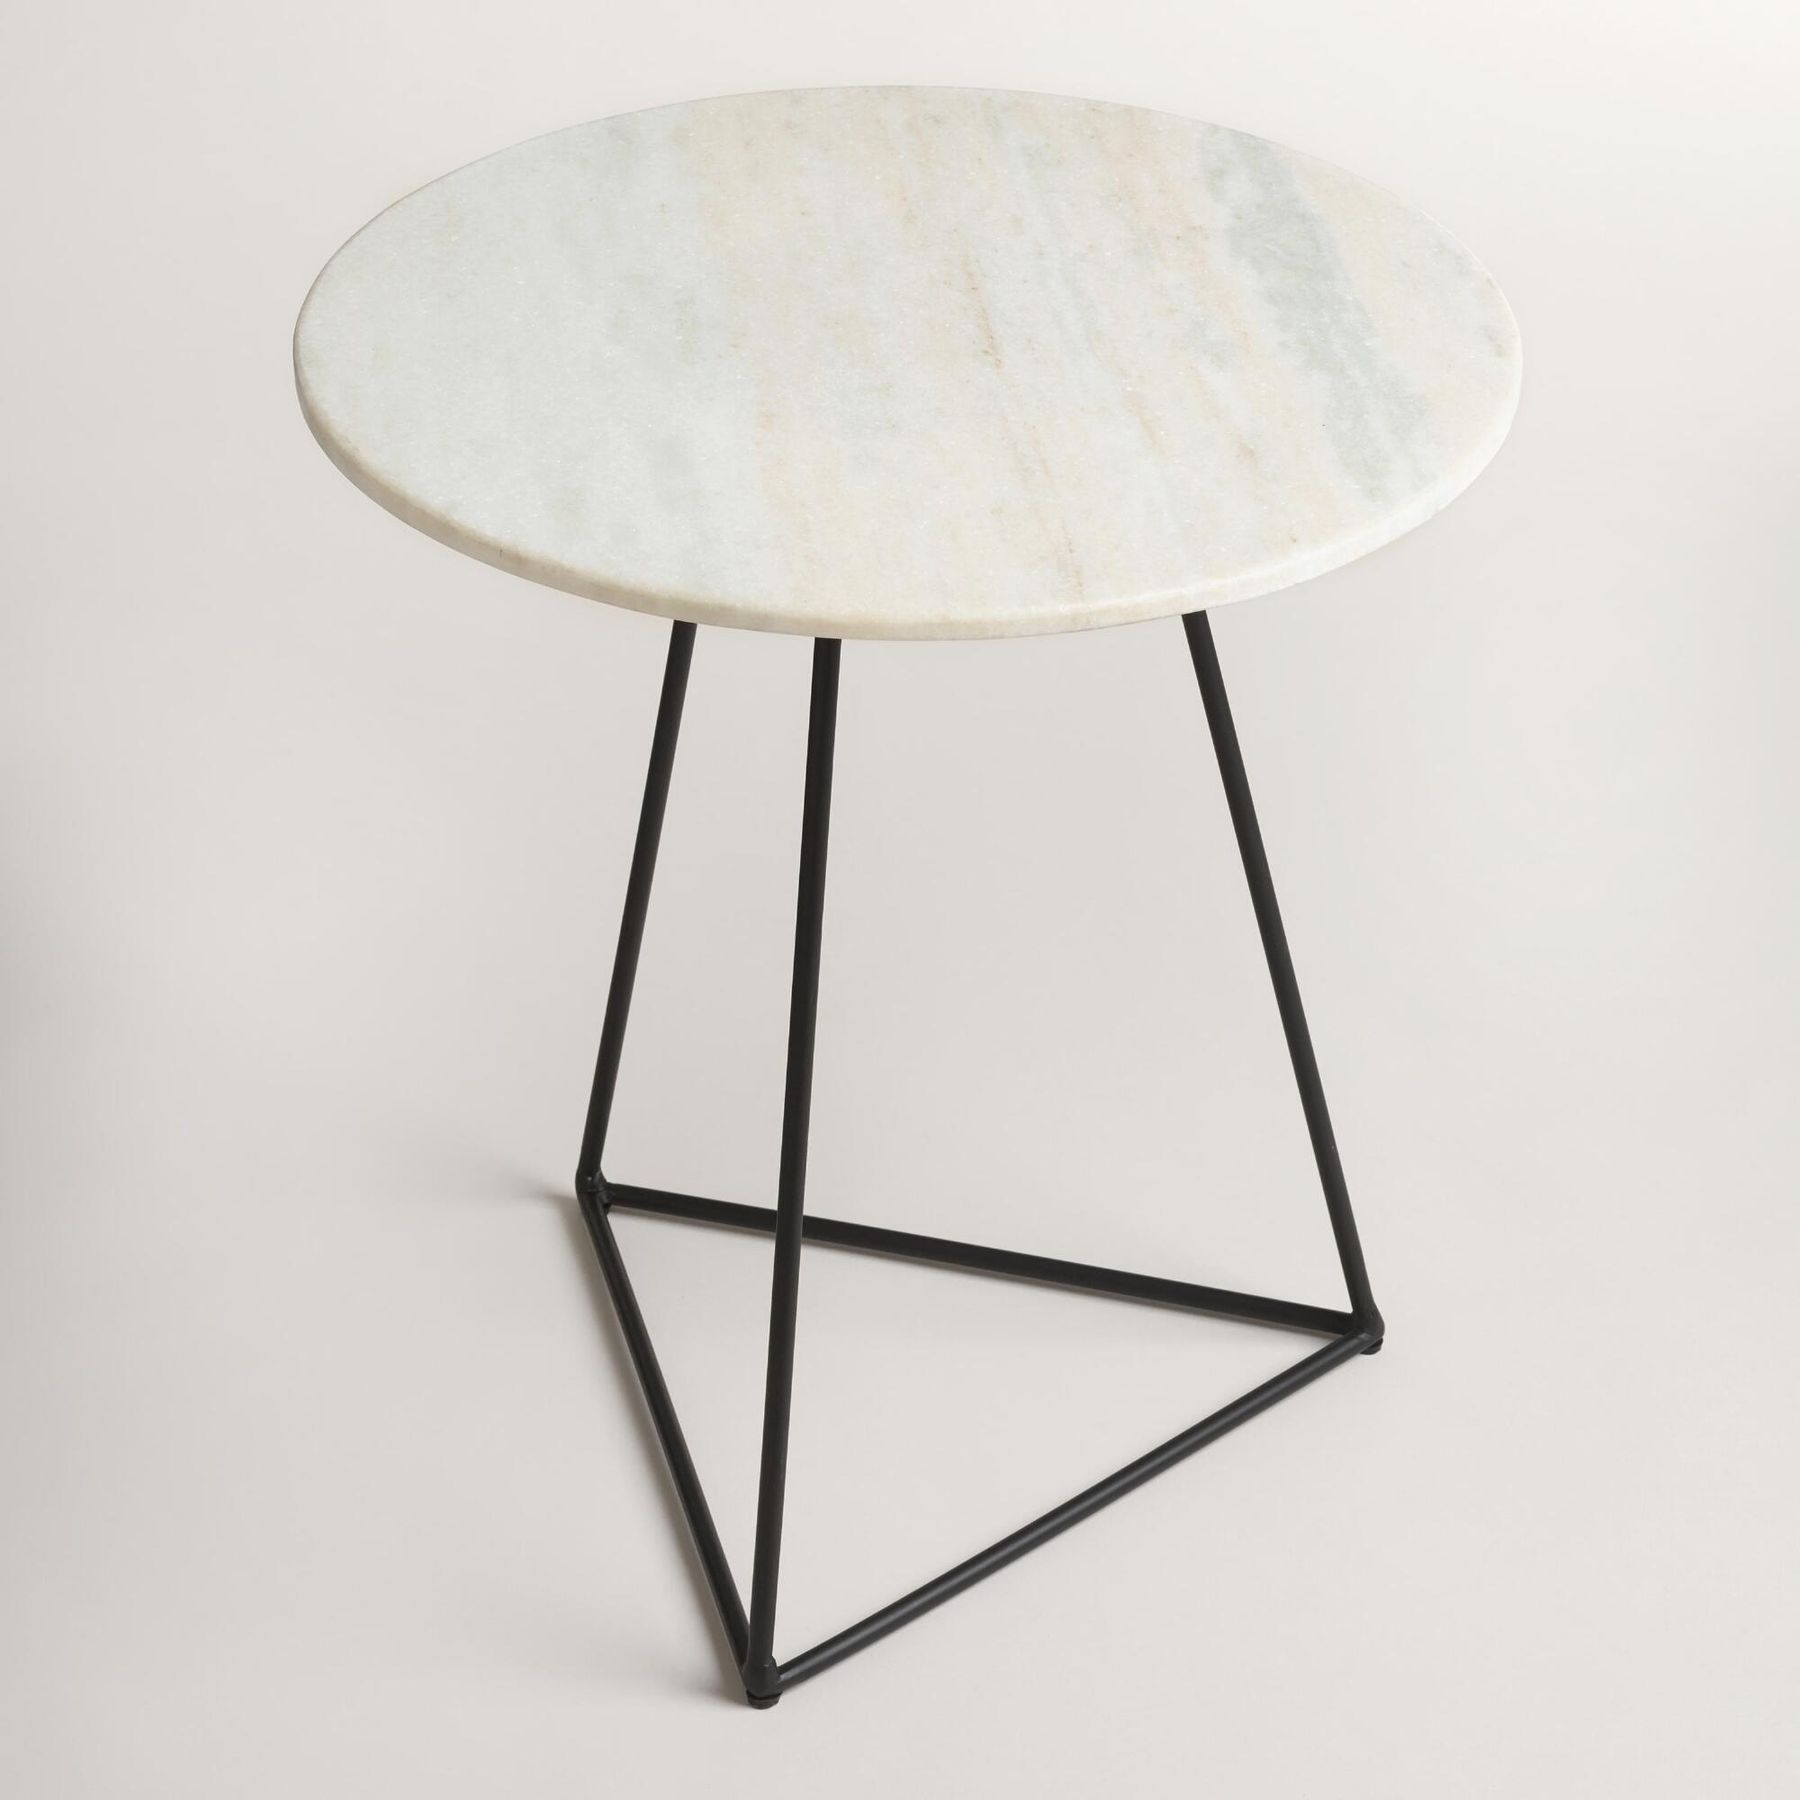 A Small Table With Round White Marble Top And Black Steel Base